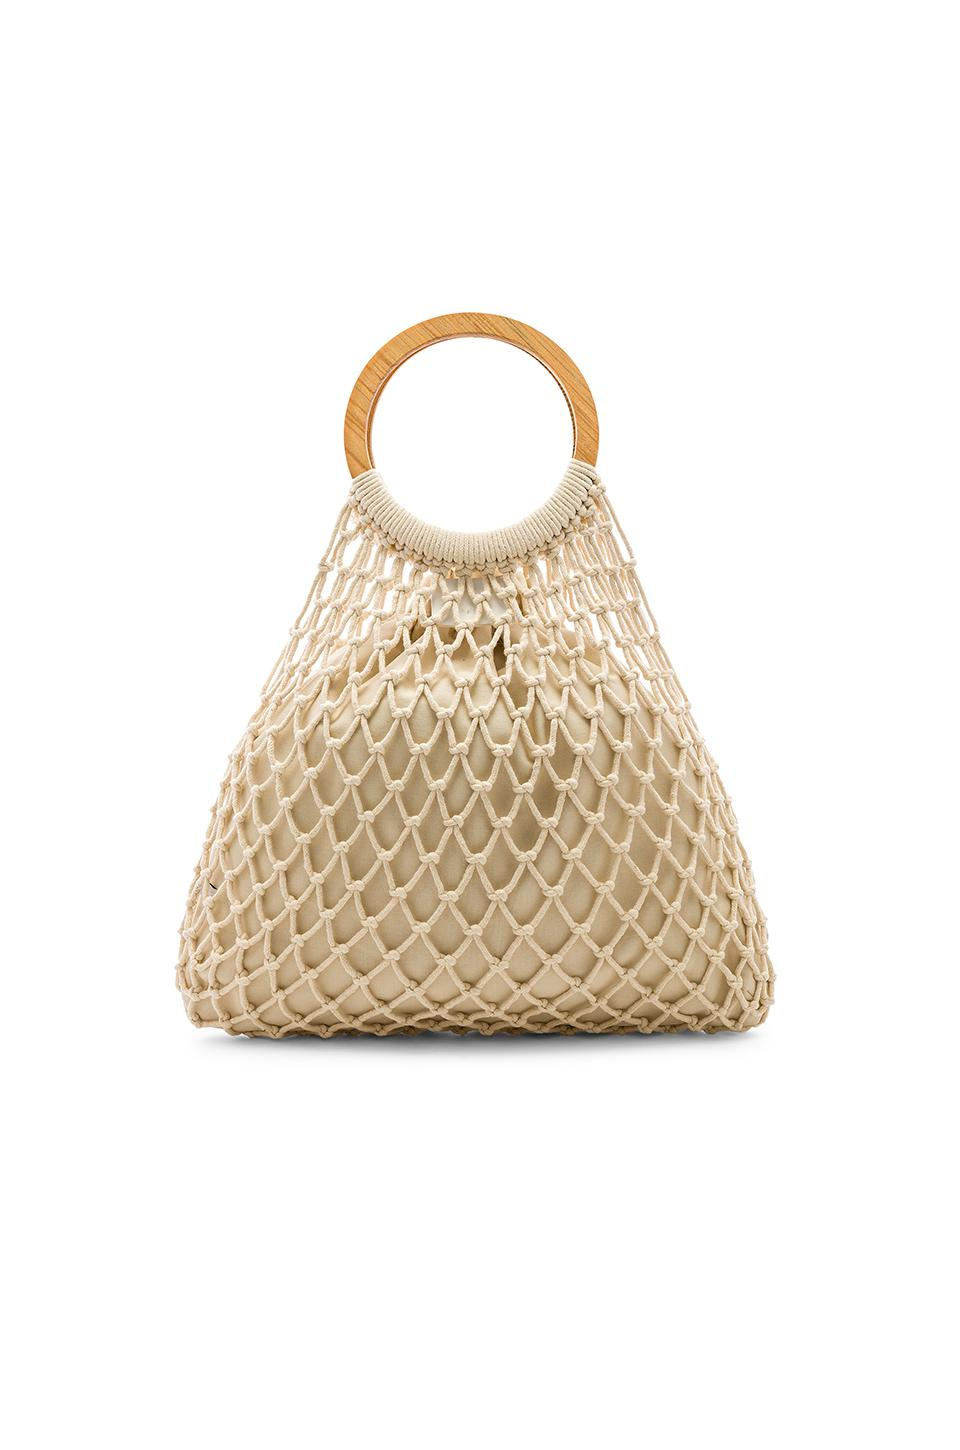 ac460f3e1a075 House of Harlow 1960 X Revolve Miki Tote Bag in Natural - Lyst